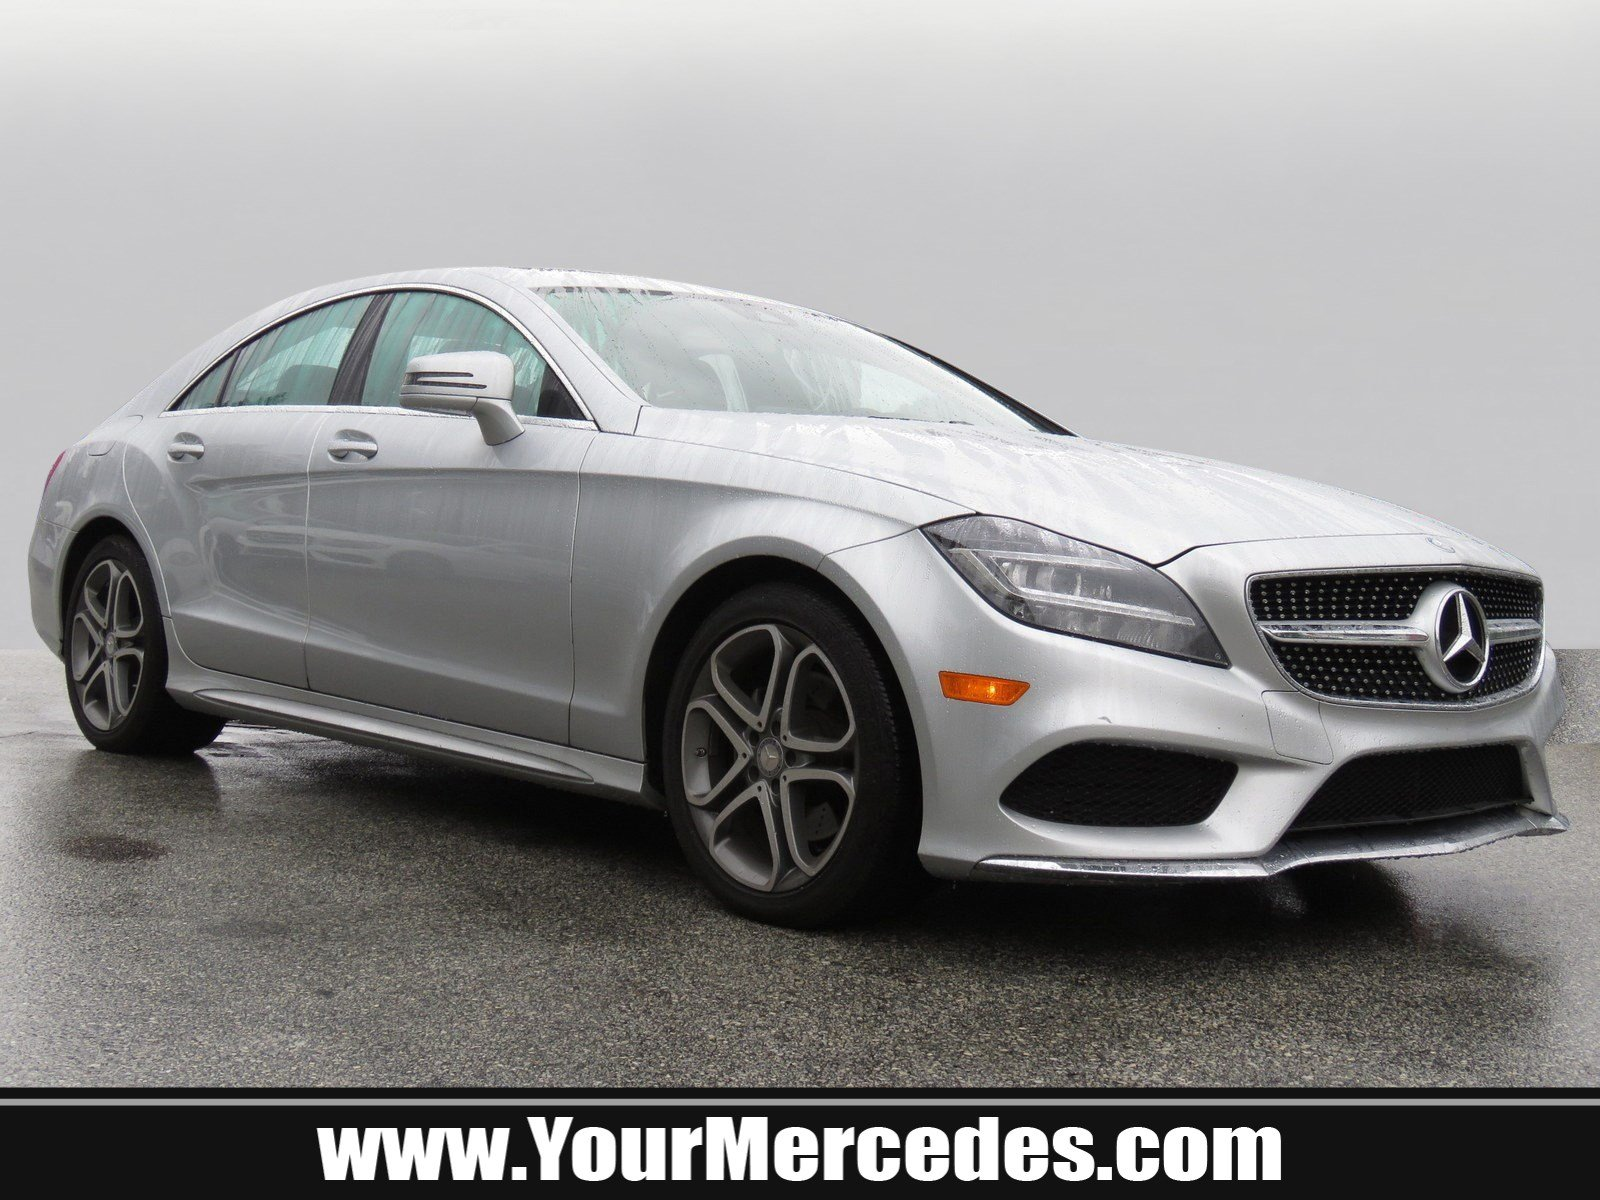 Certified Pre Owned 2015 Mercedes Benz CLS CLS 400 Coupe in Fort